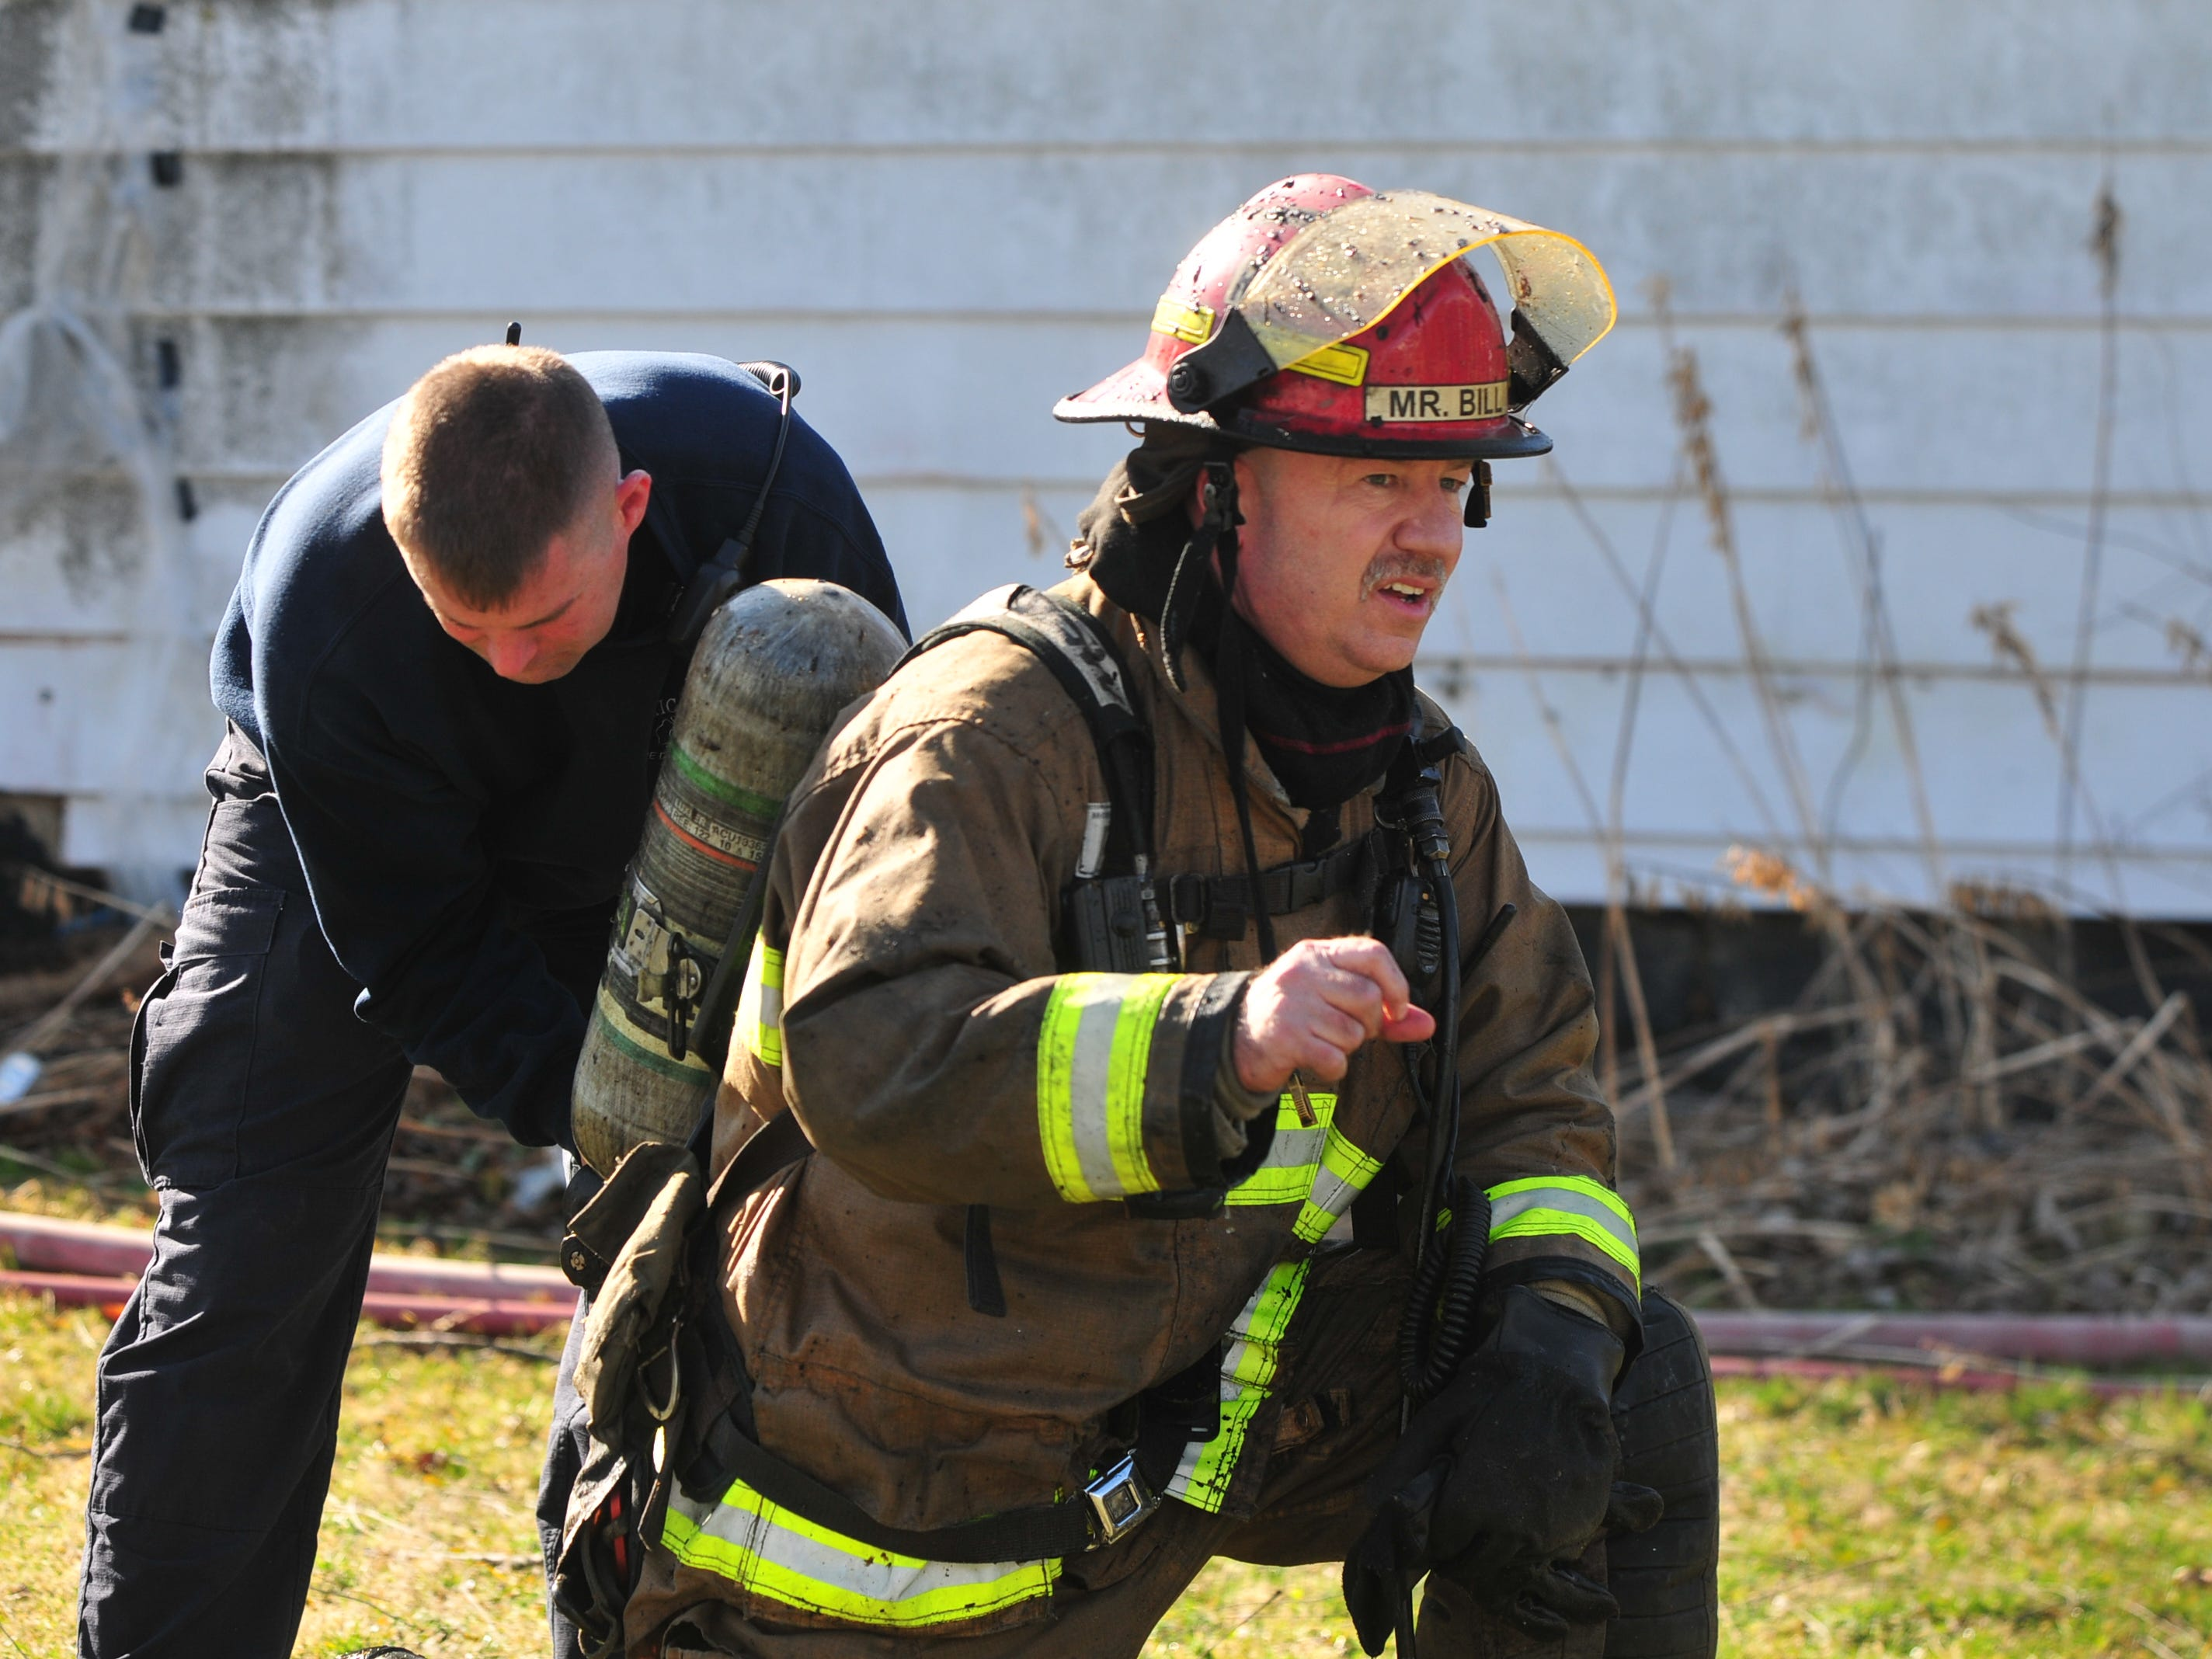 Lt. Bill Kirkman has his air tank changed Wednesday morning at a house fire in the 2100 block of South 11th Street.